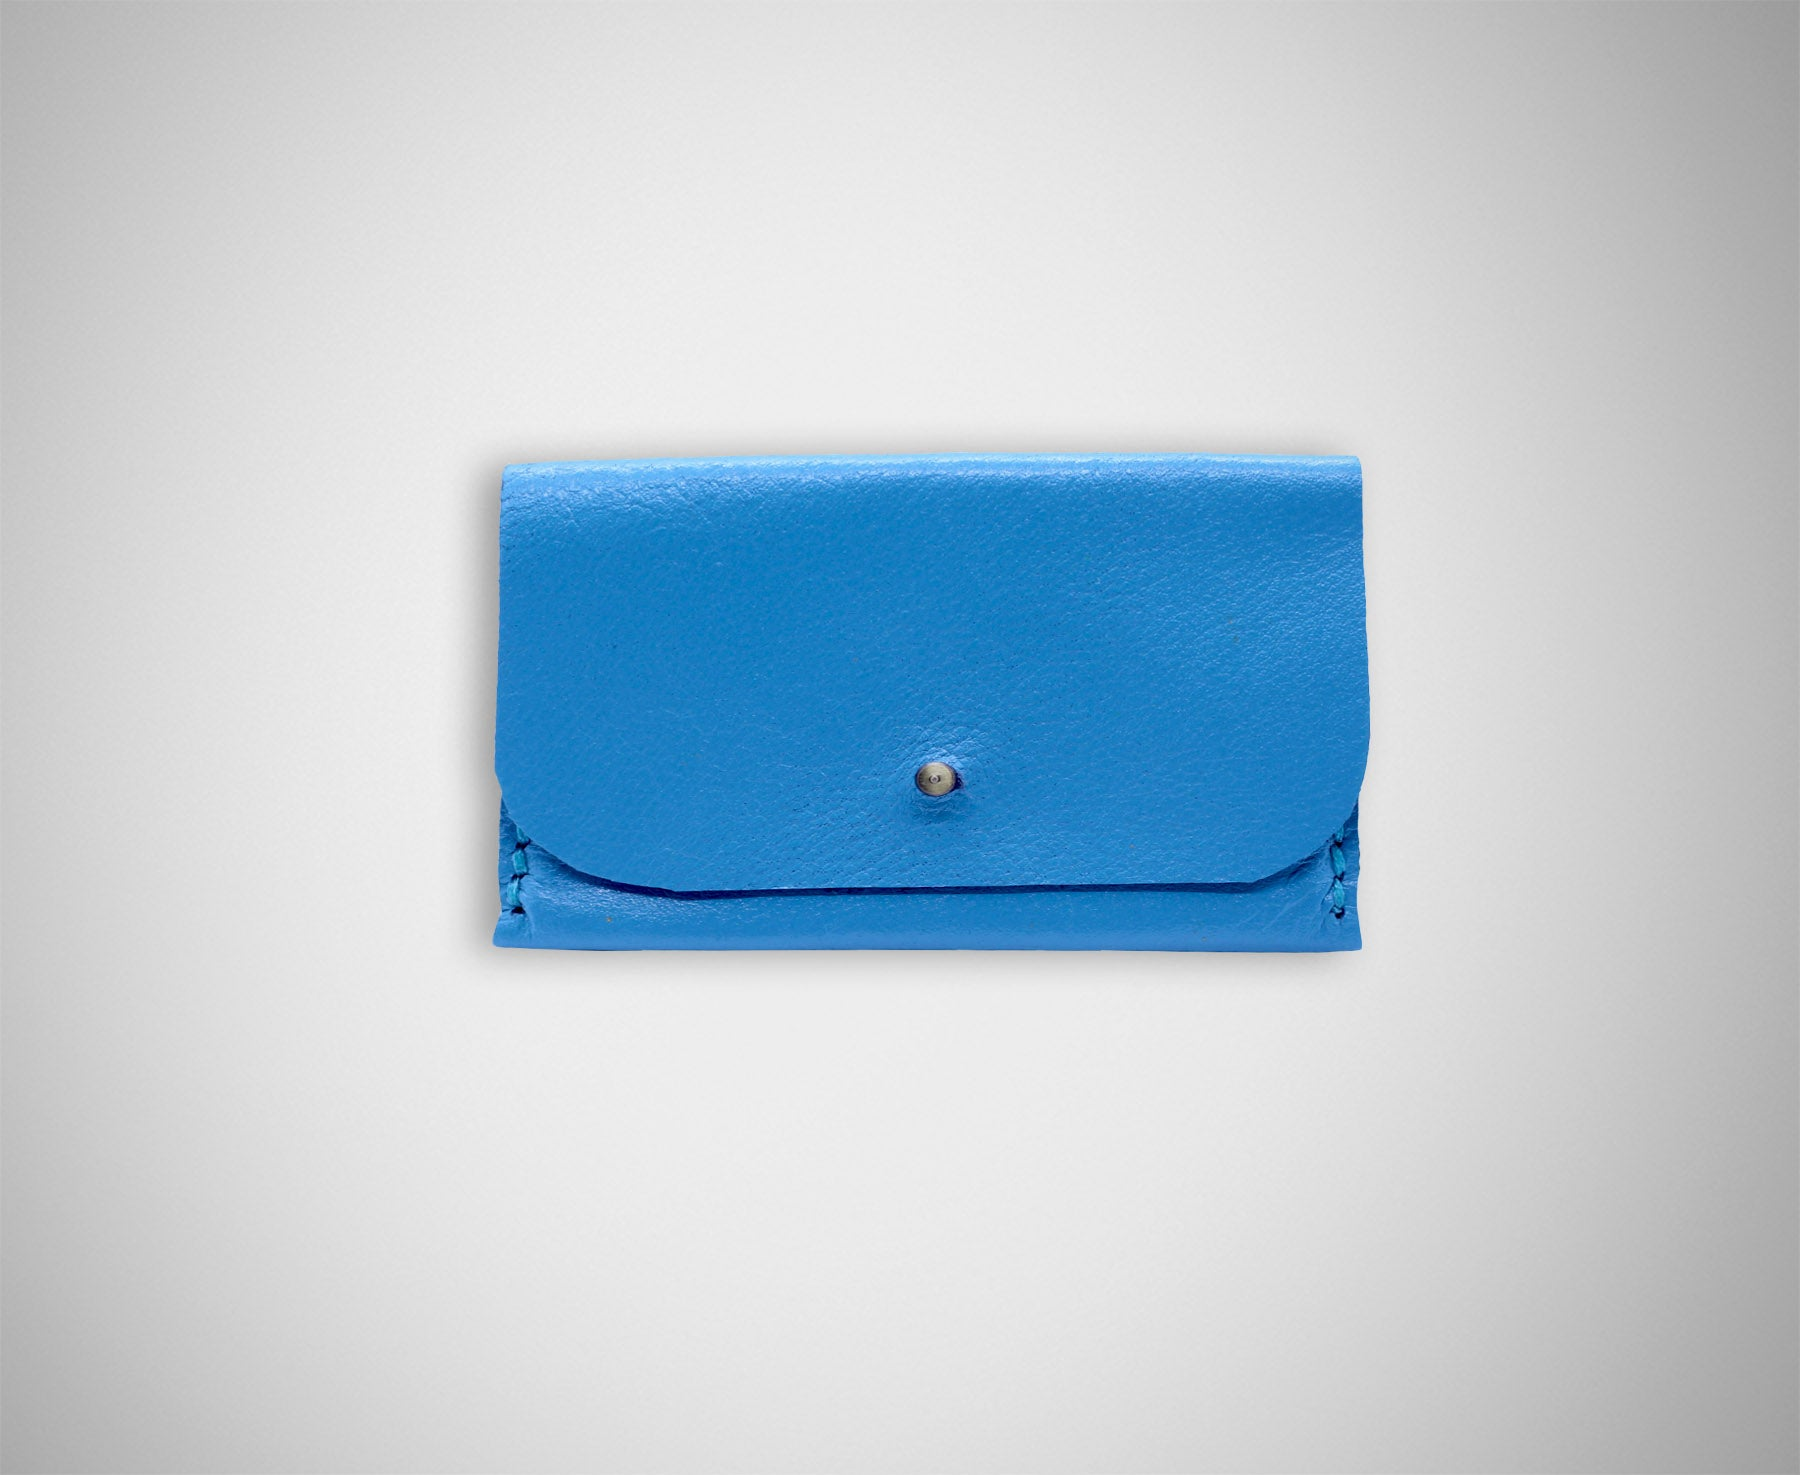 ARKWARD BLUE LEATHER CARD CASE